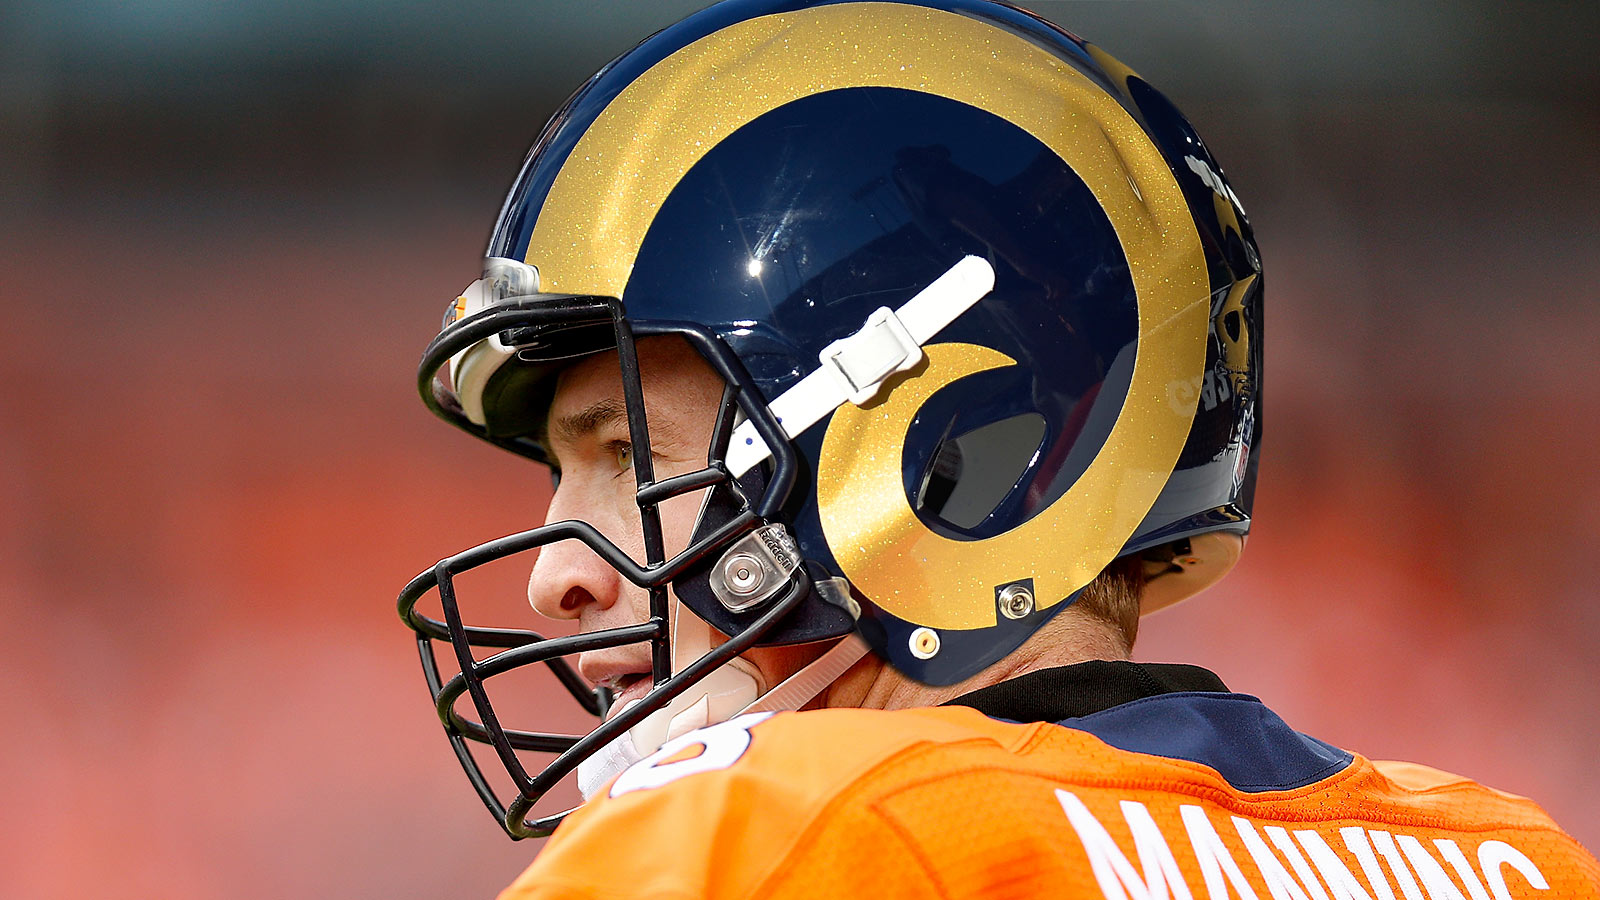 Report: Rams discussed acquiring Peyton Manning for 2016